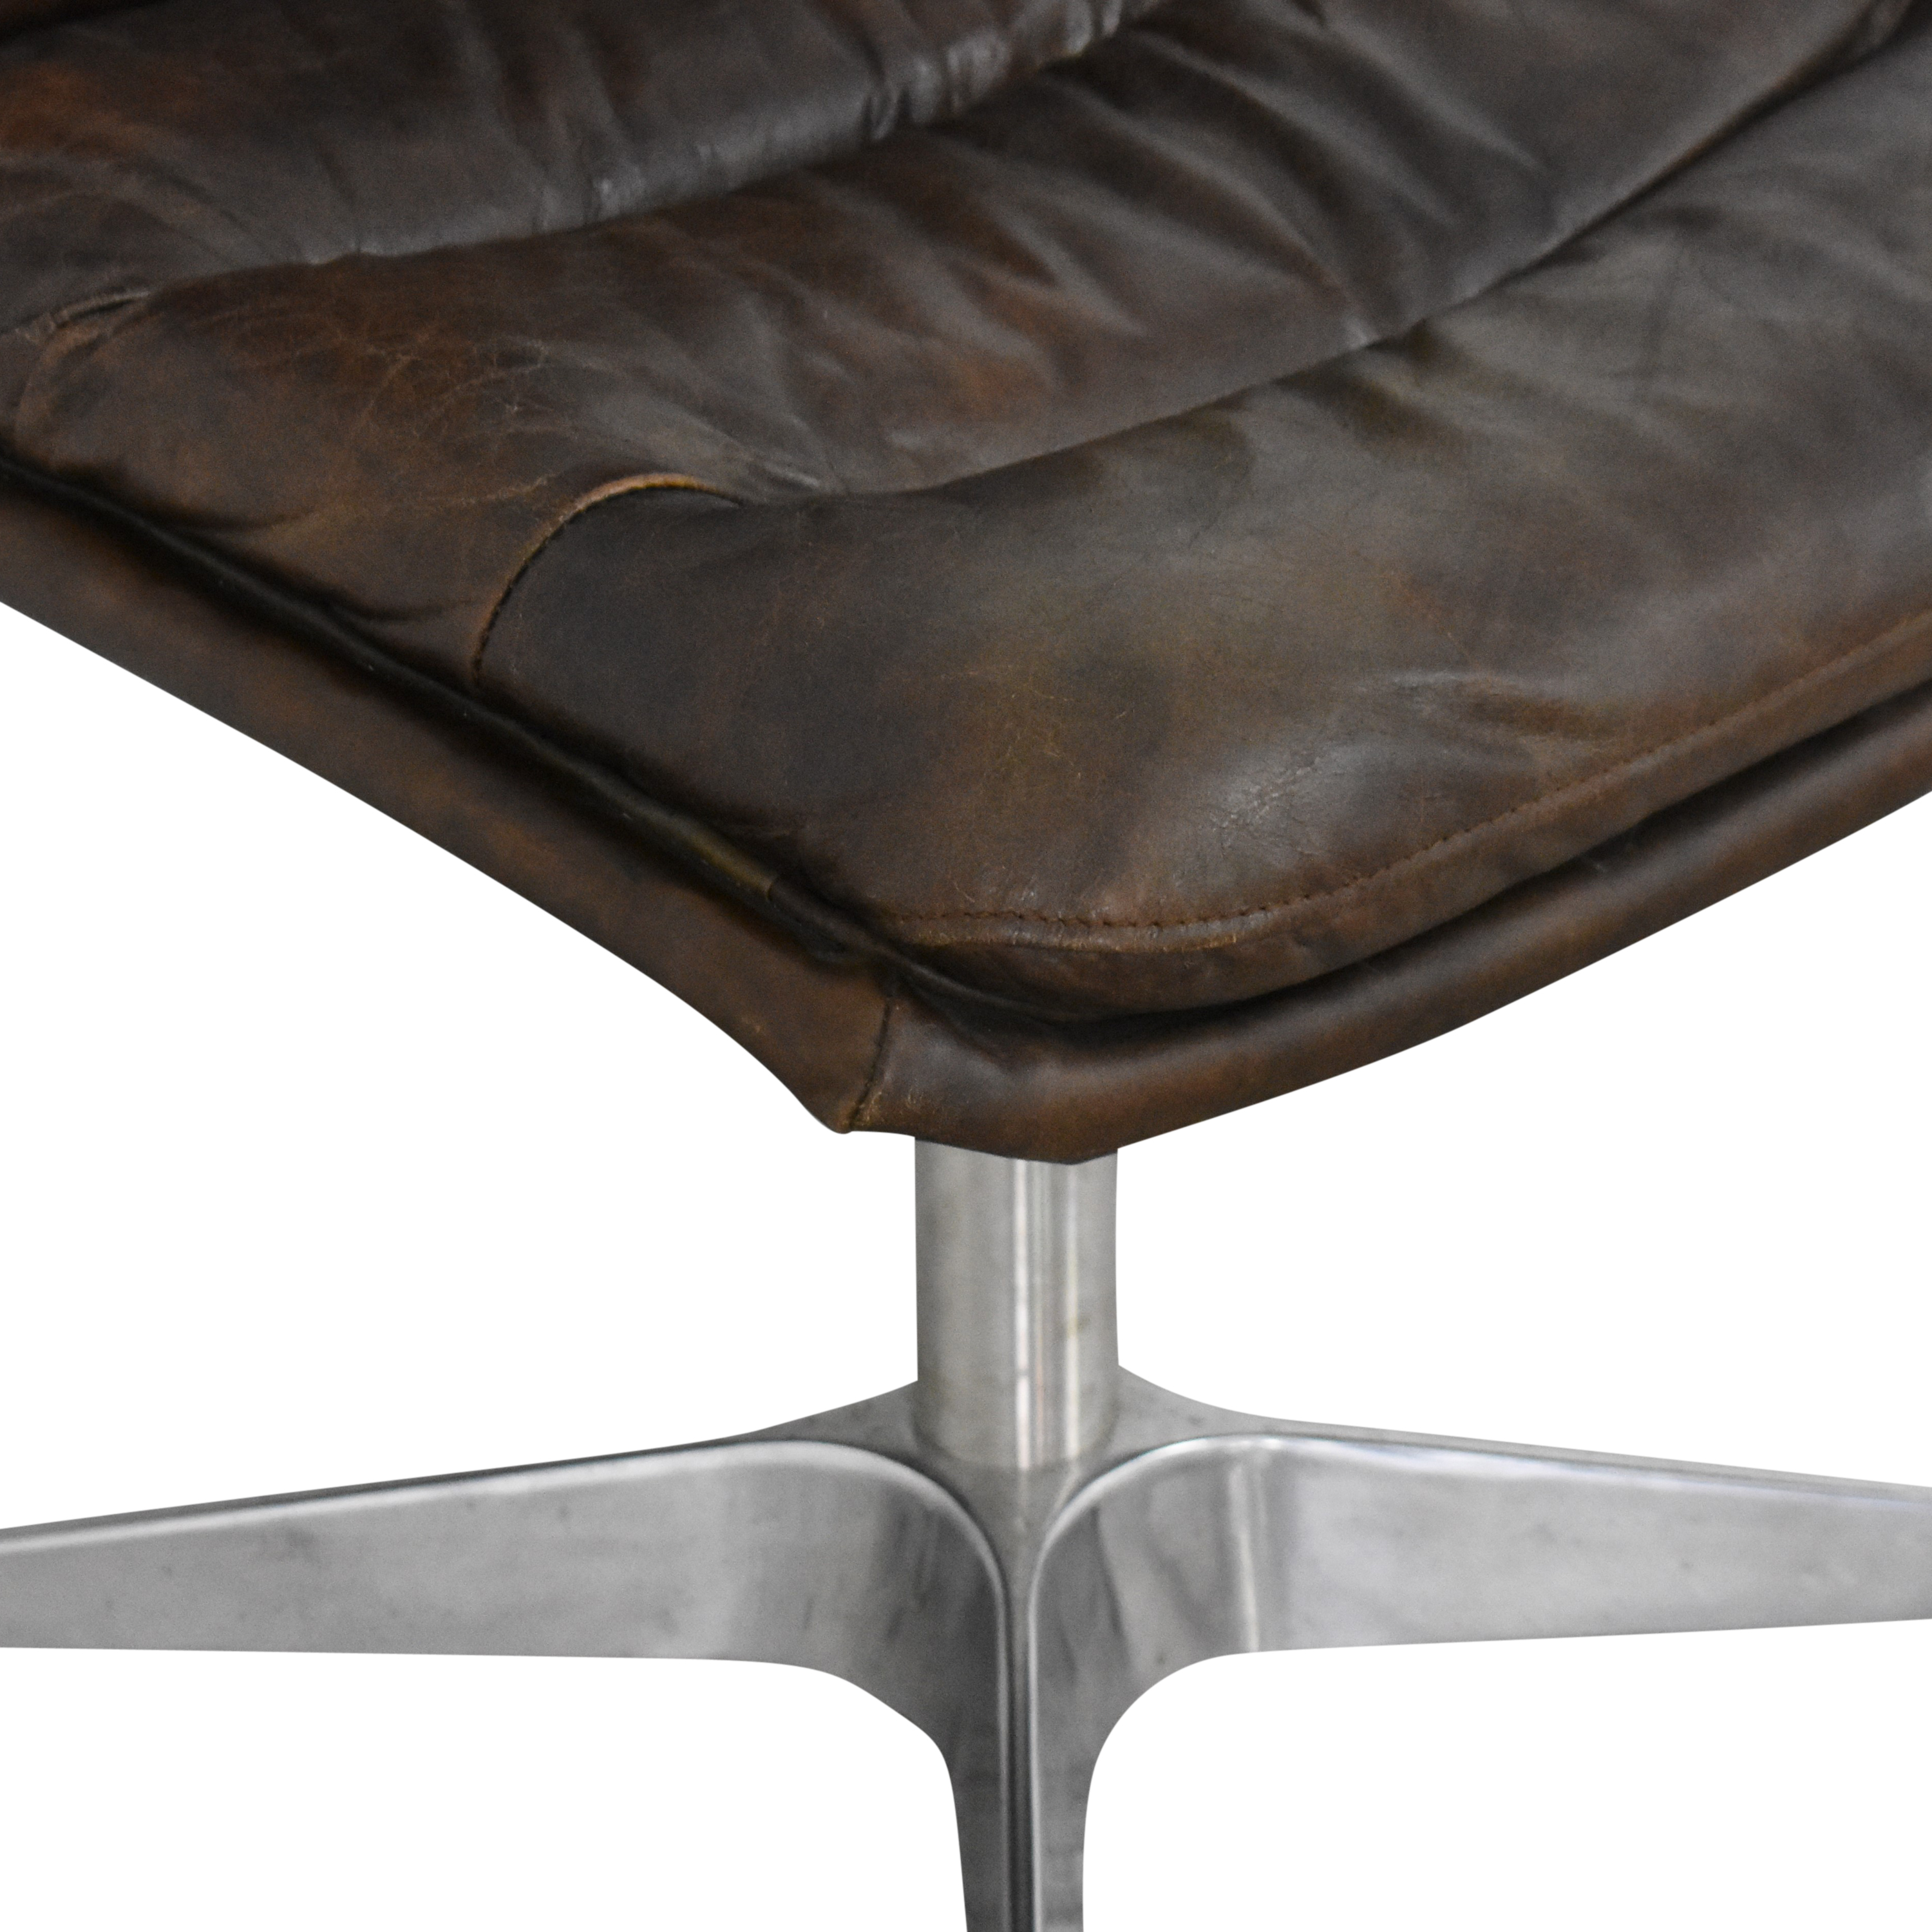 Restoration Hardware Griffith Desk Chair / Chairs